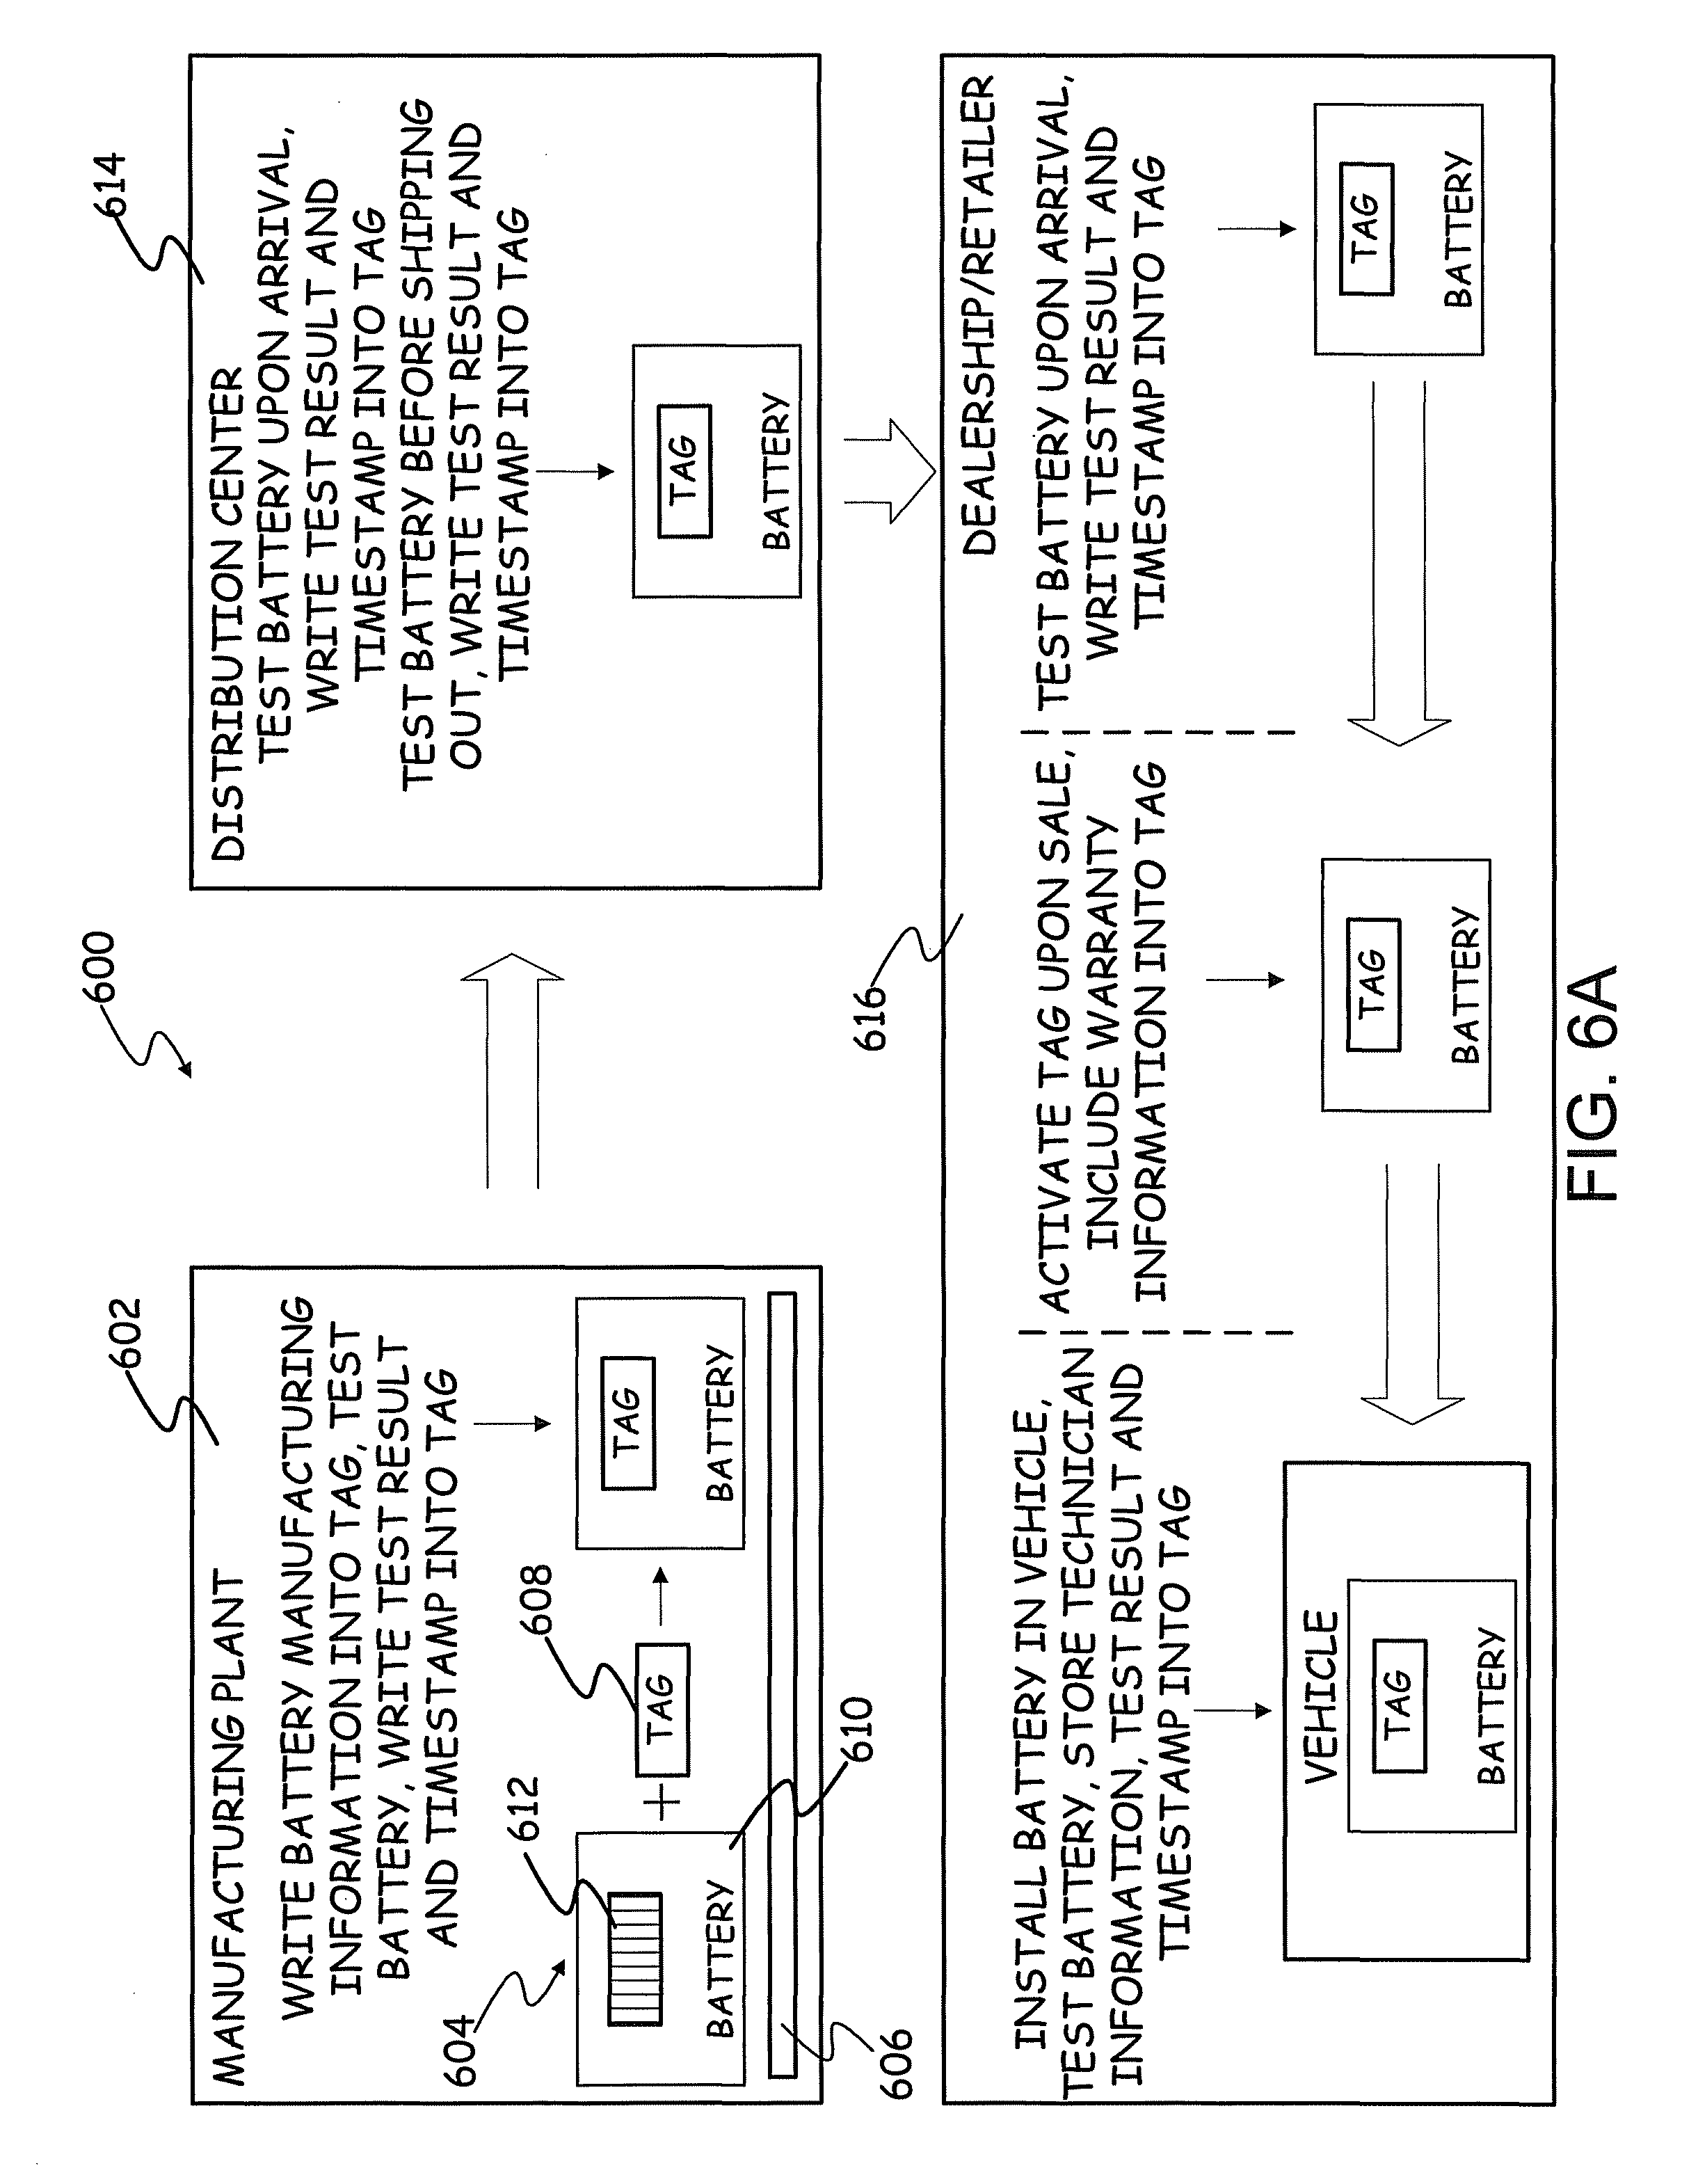 Patent Us 8344685 B2 Hawker Powersource Battery Cell Diagram 0 Petitions